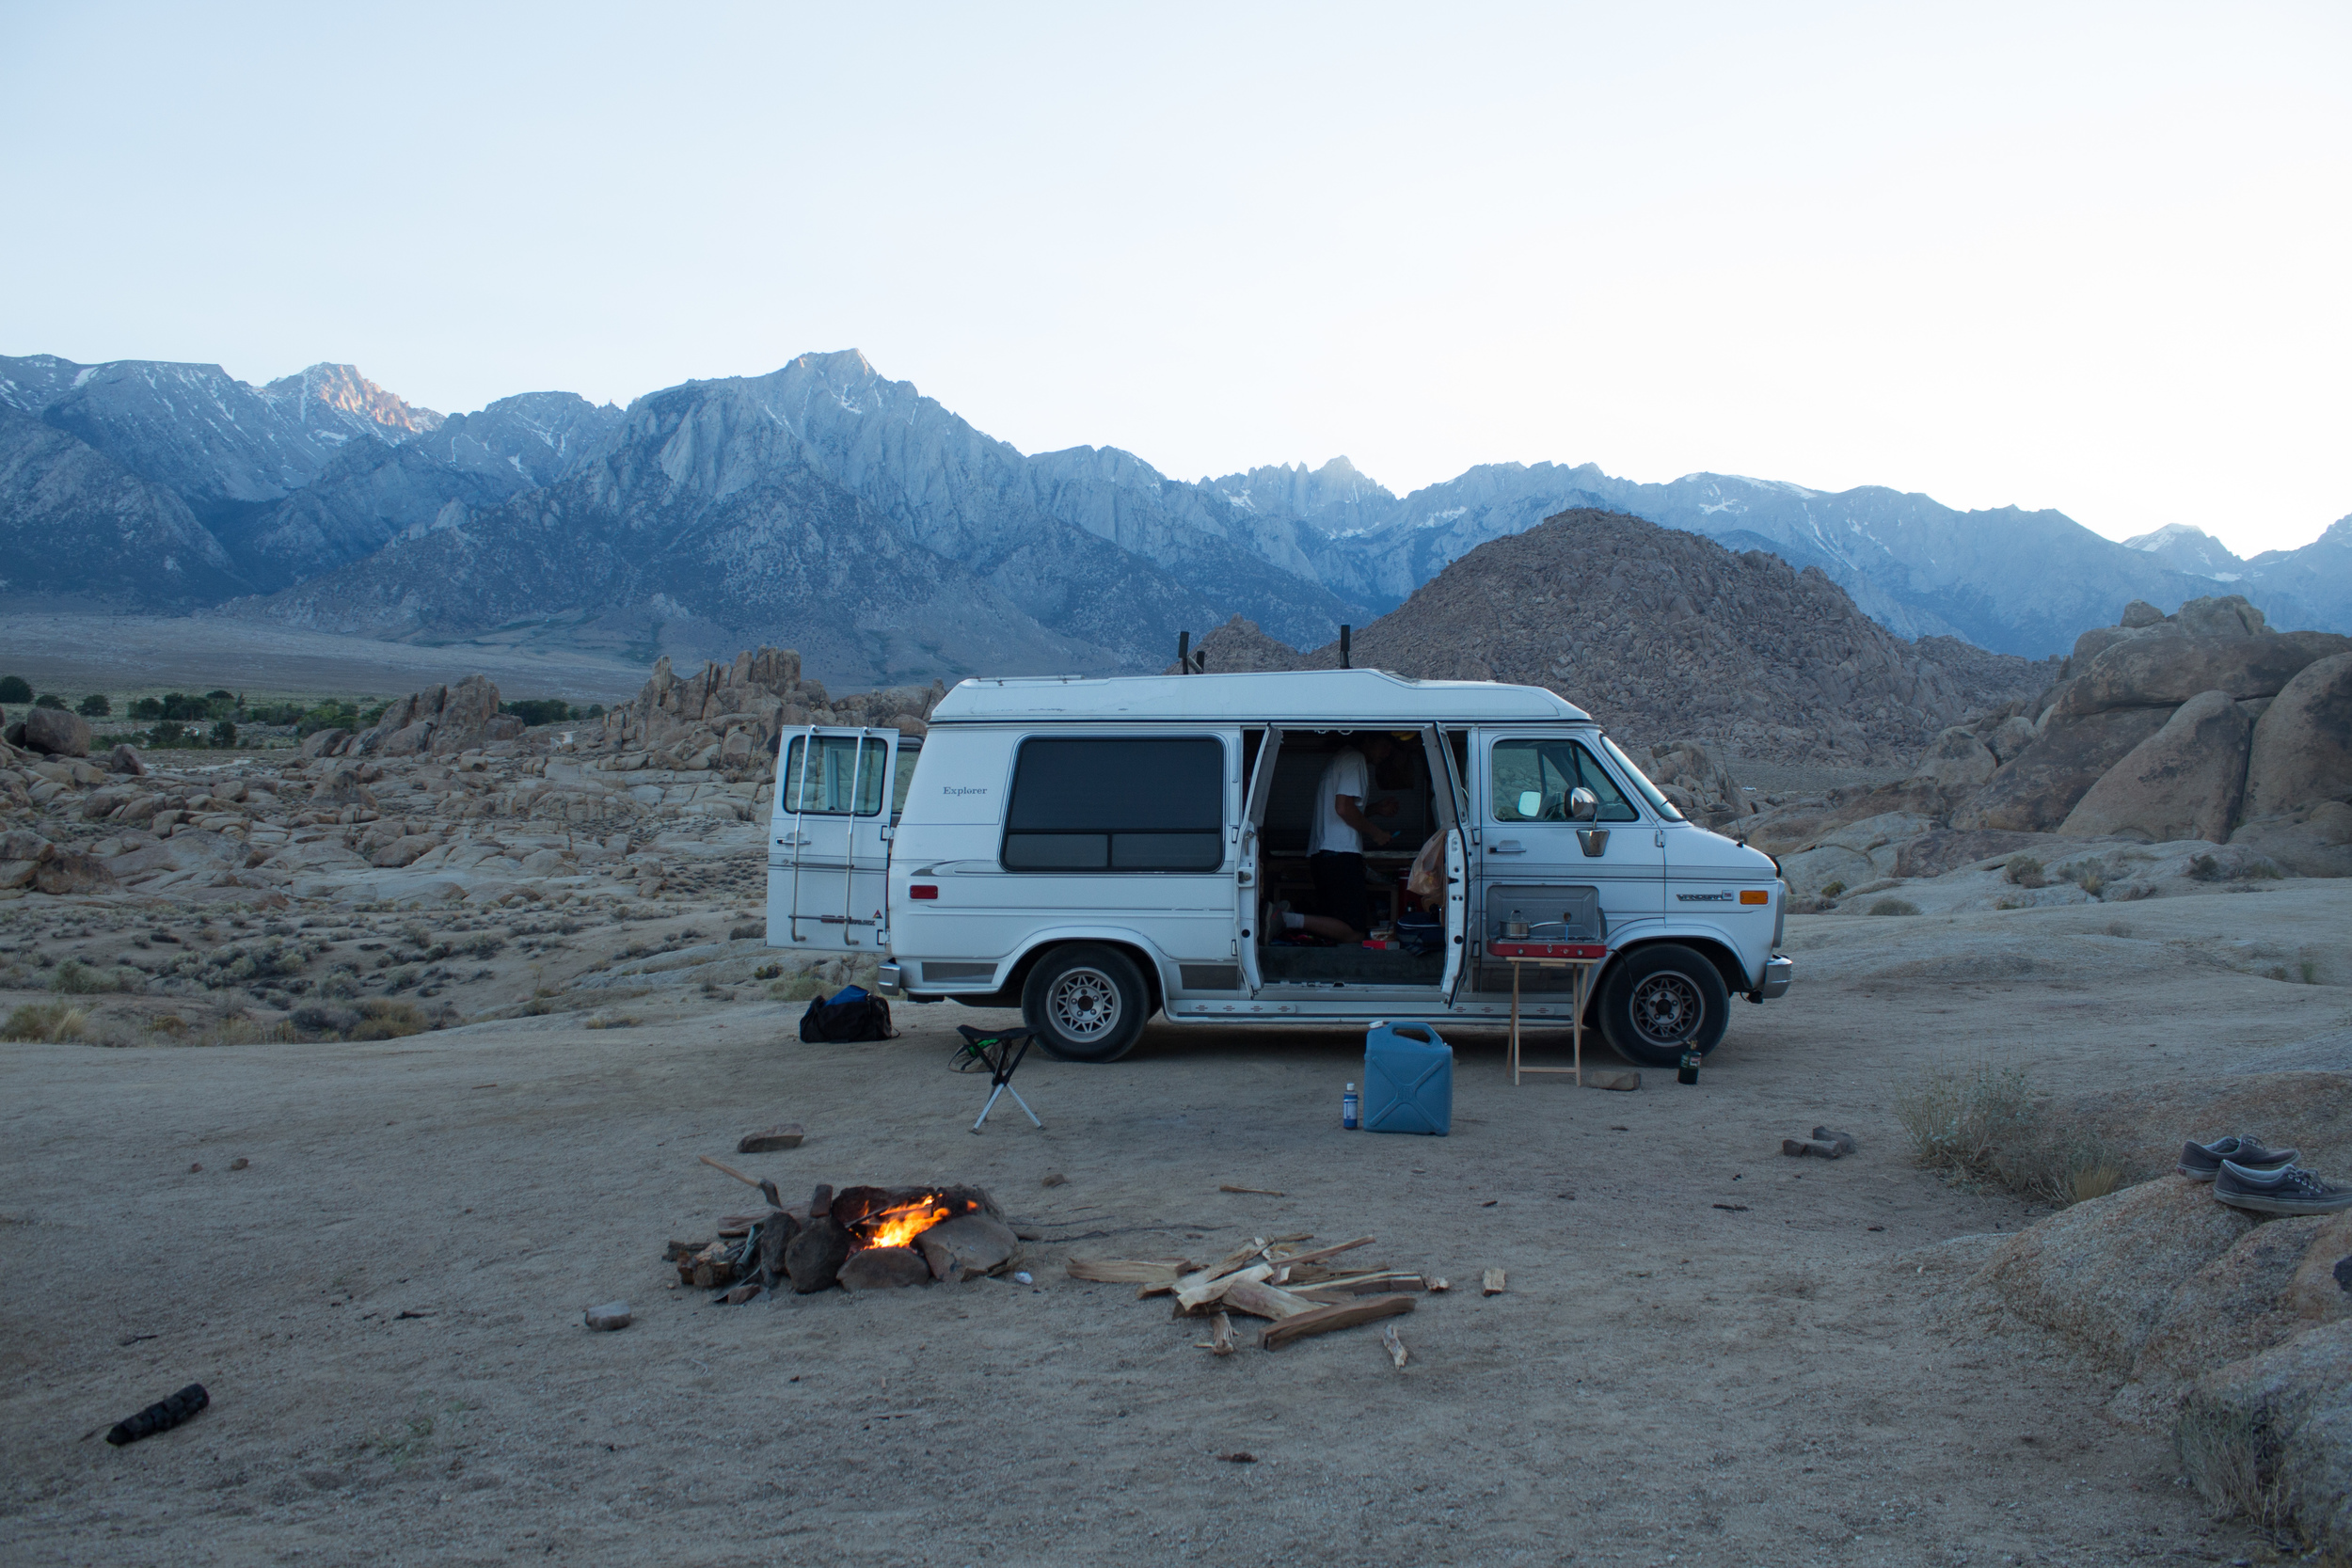 """We spent the first night sleeping at the base of Mt. Whitney in the Alabama Hills, just outside of Lone Pine, CA. Due to the beating sun, we spent the day in the mountains trying to find pools to fish. Instead, we ended up hiking more than we expected and only managed to catch a few tiny ones. After spending an hour or two playing our knife throwing competition, we called it a day and headed down the mountain in hopes it cooled off. We were sorely wrong. It was summer in the desert. Until sundown, we spent the remaining afternoon laying on rocks and playing cards in the shade. After the sun went down, we made a fire, only to realize it was still too warm, so we ended up sitting a good 20 feet away from it. When we were finally ready for sleep, we folded out the bed and popped open the sunroof.  """"I don't know if we're even gonna sleep tonight,"""" John said nervously but somewhat comically.  """"Come on, dude. It's not even that bad. We're so tired that we'll fall asleep no matter what,"""" I stated, in hopes of getting up our spirit.  As I laid down on the leather sofa with the thinnest blanket I could find, my eyes stared at the ceiling and I began to break a sweat. """"Yeah... This is gonna be a long night."""""""